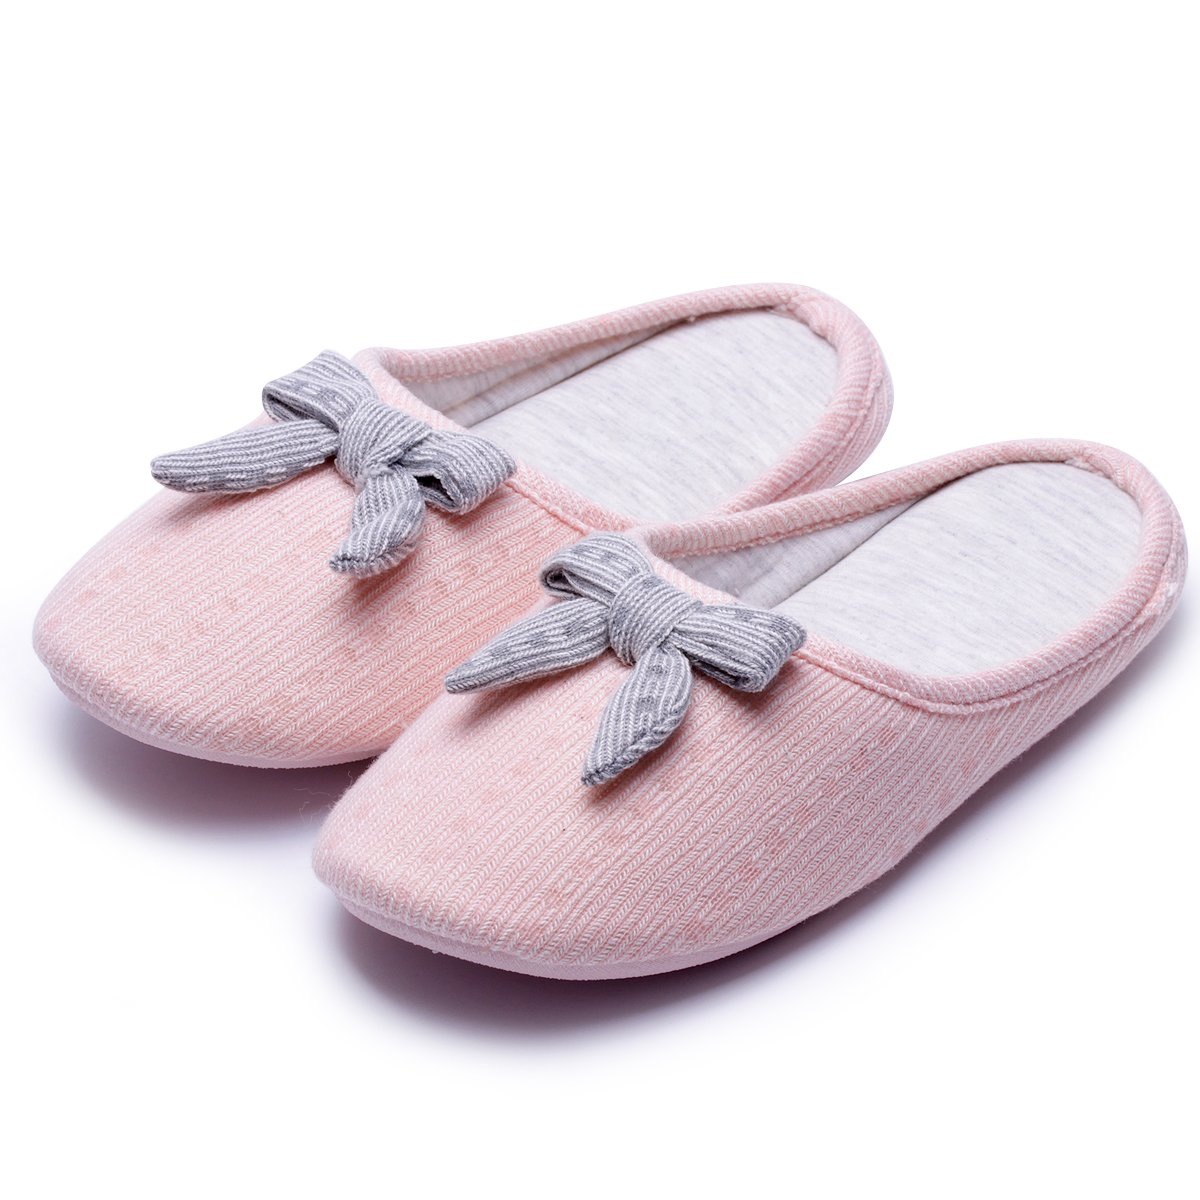 Knitted Slippers with Bow| Cute Cozy Women Slippers | Comfort House Slippers | SliponIndoor Shoes | Memory Foam Anti-Slip Sole (6.5-7.5, Pink Bow)